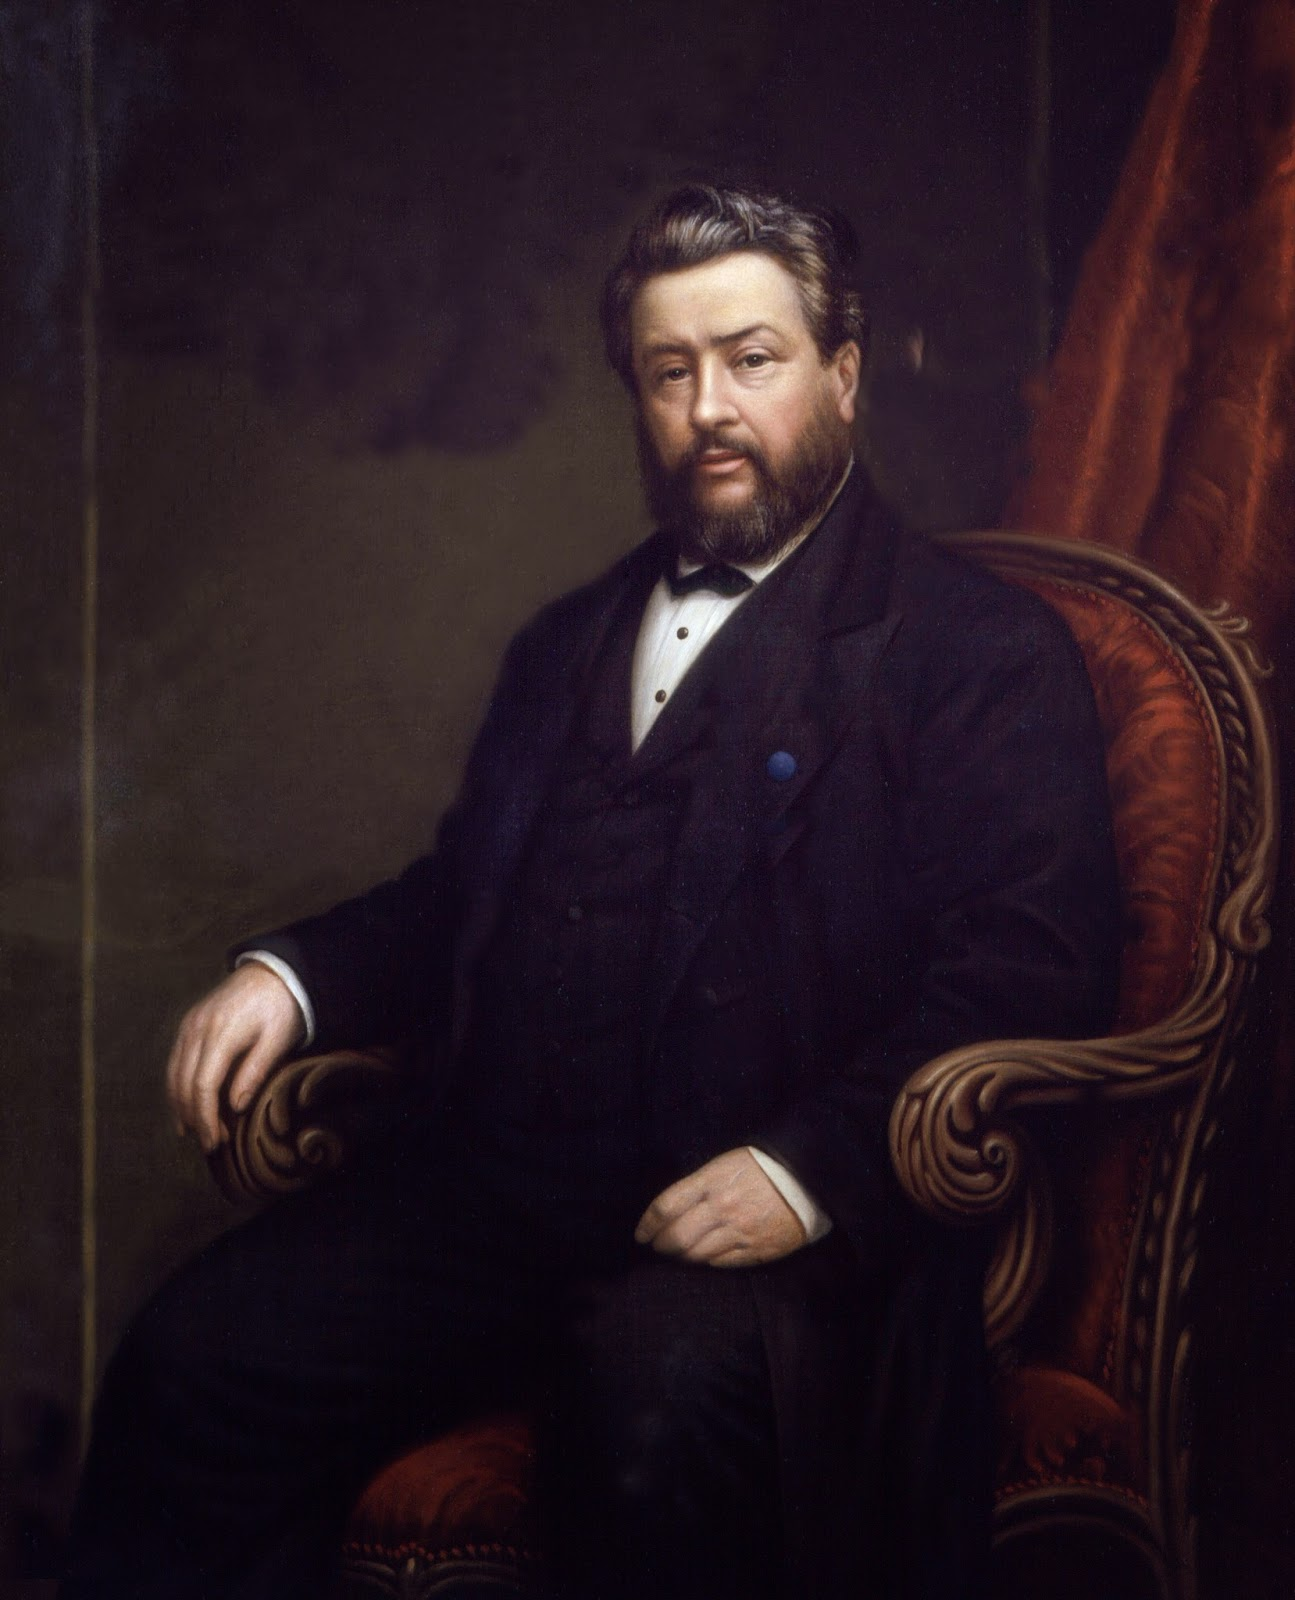 a biography of charles haddon spurgeon one of the greatest preachers of all time How childhood influences shaped a great preacher spurgeon  [wy fullerton,  charles haddon spurgeon (chicago: moody, 1966), 21]  (there was only one  time in his school career when his grades began to fail and his.